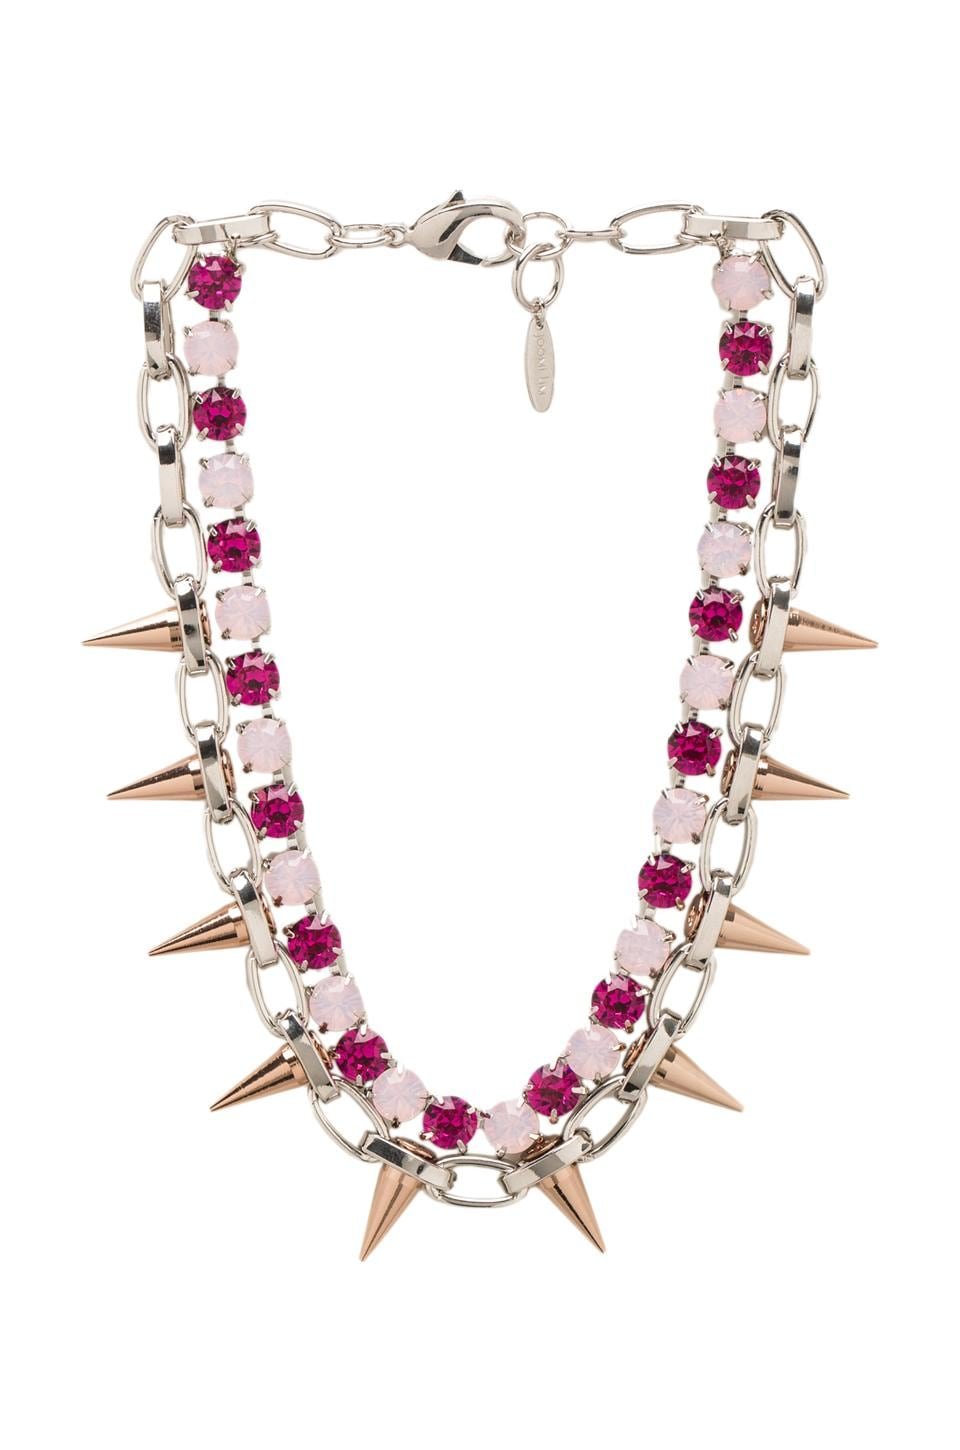 JOOMI LIM Crystal & Spike Choker in Pink/Rhodium/Rose Gold Spikes